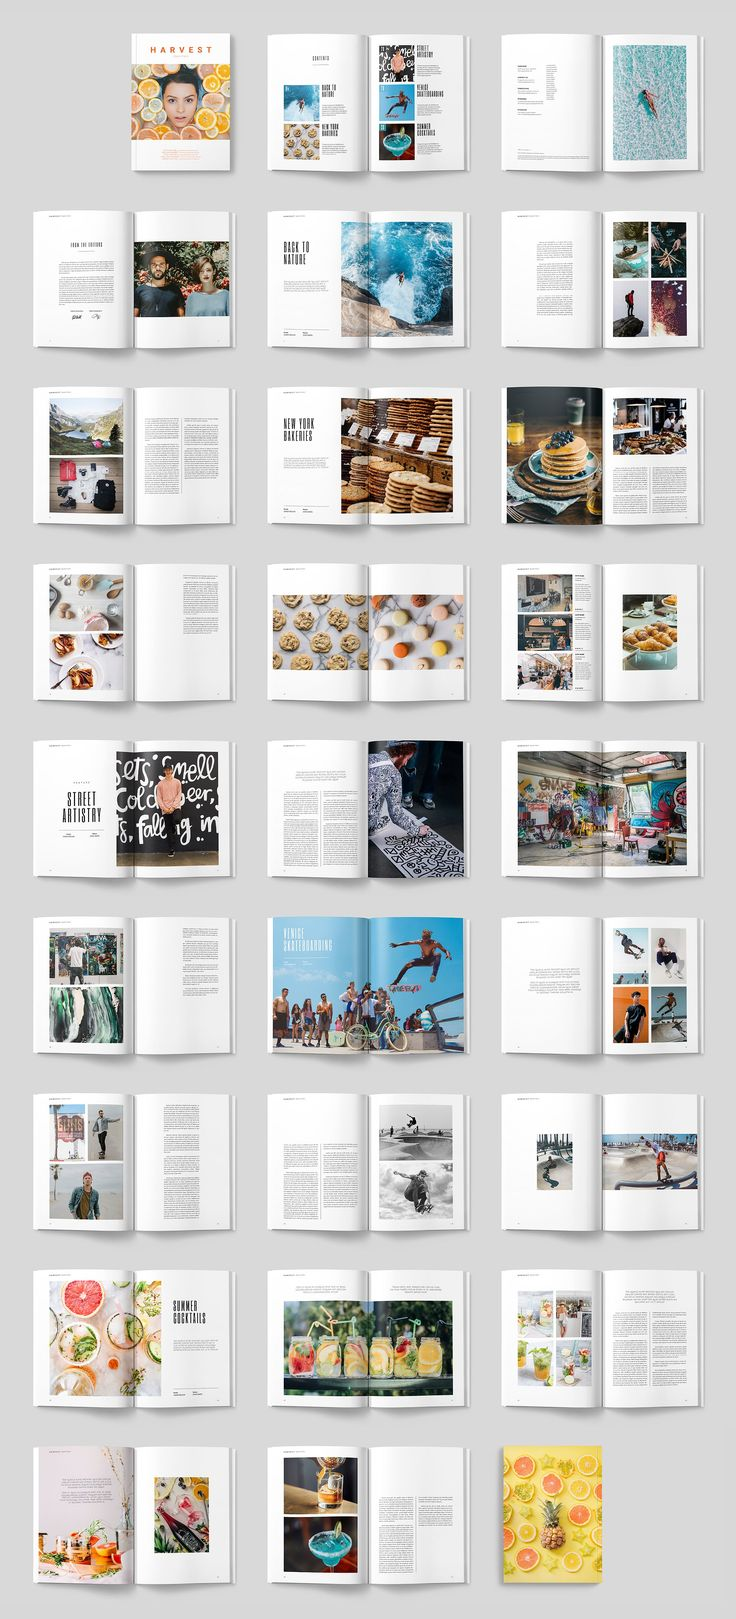 HARVEST MAGAZINE by ThomasMakesStuff on @creativemarket #magazine #brochure #indesign #template